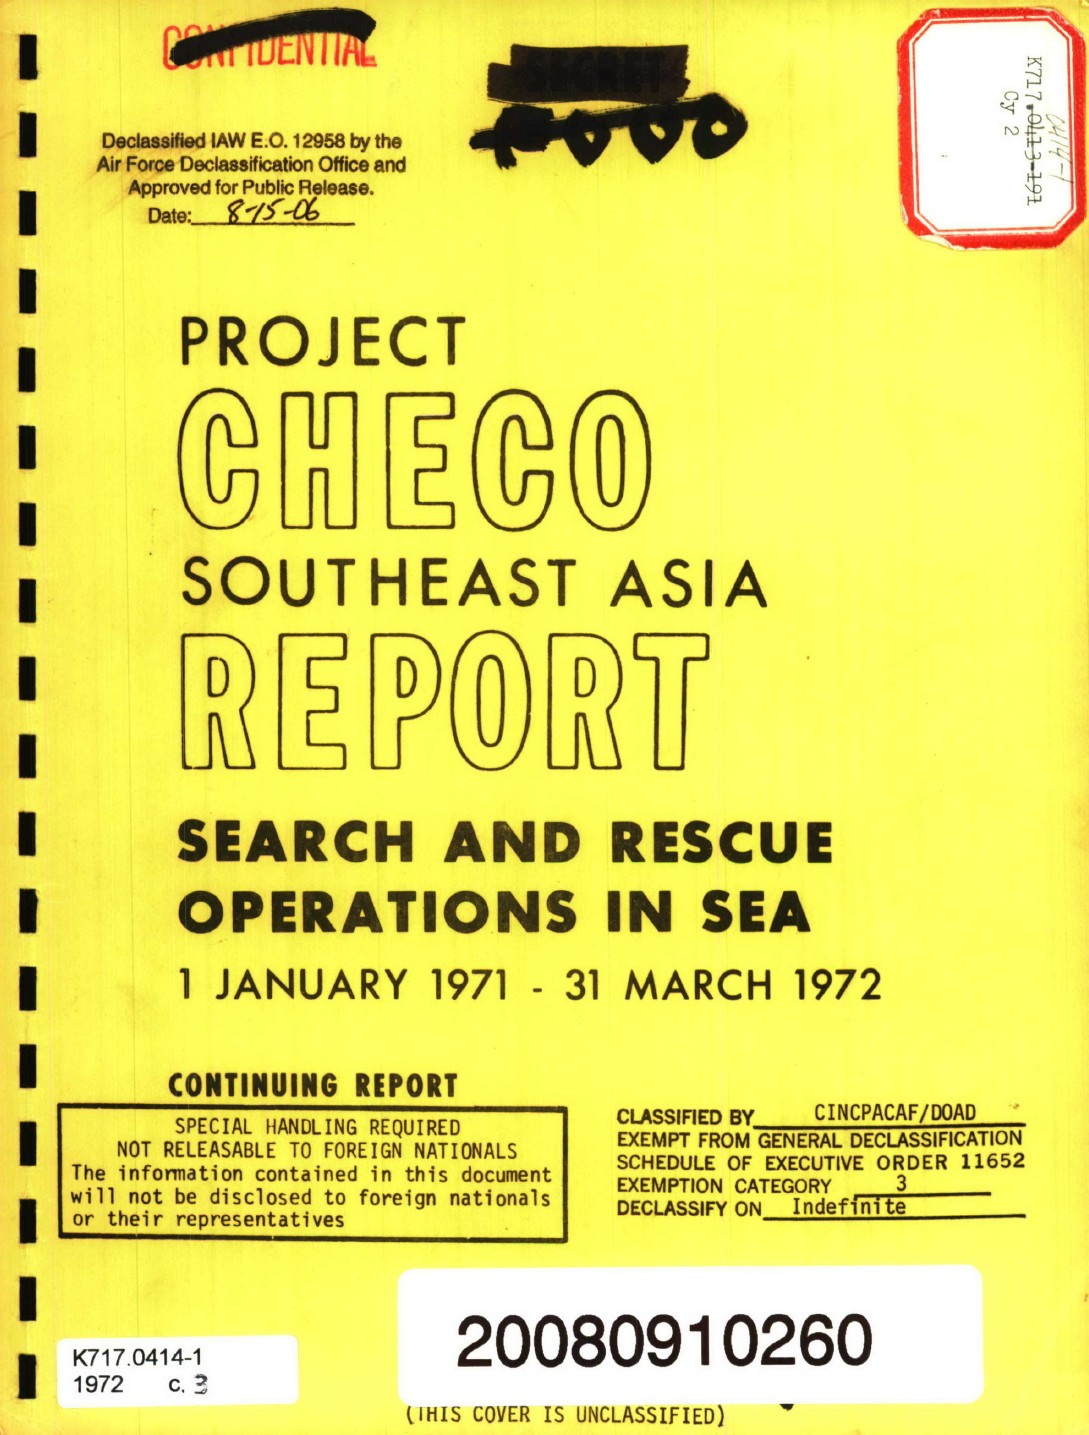 Page-from-Project-CHECO-Southeast-Asia-Report-Search-and-Rescue-Operations-in-SEA-1-January-1971-31-March-1972